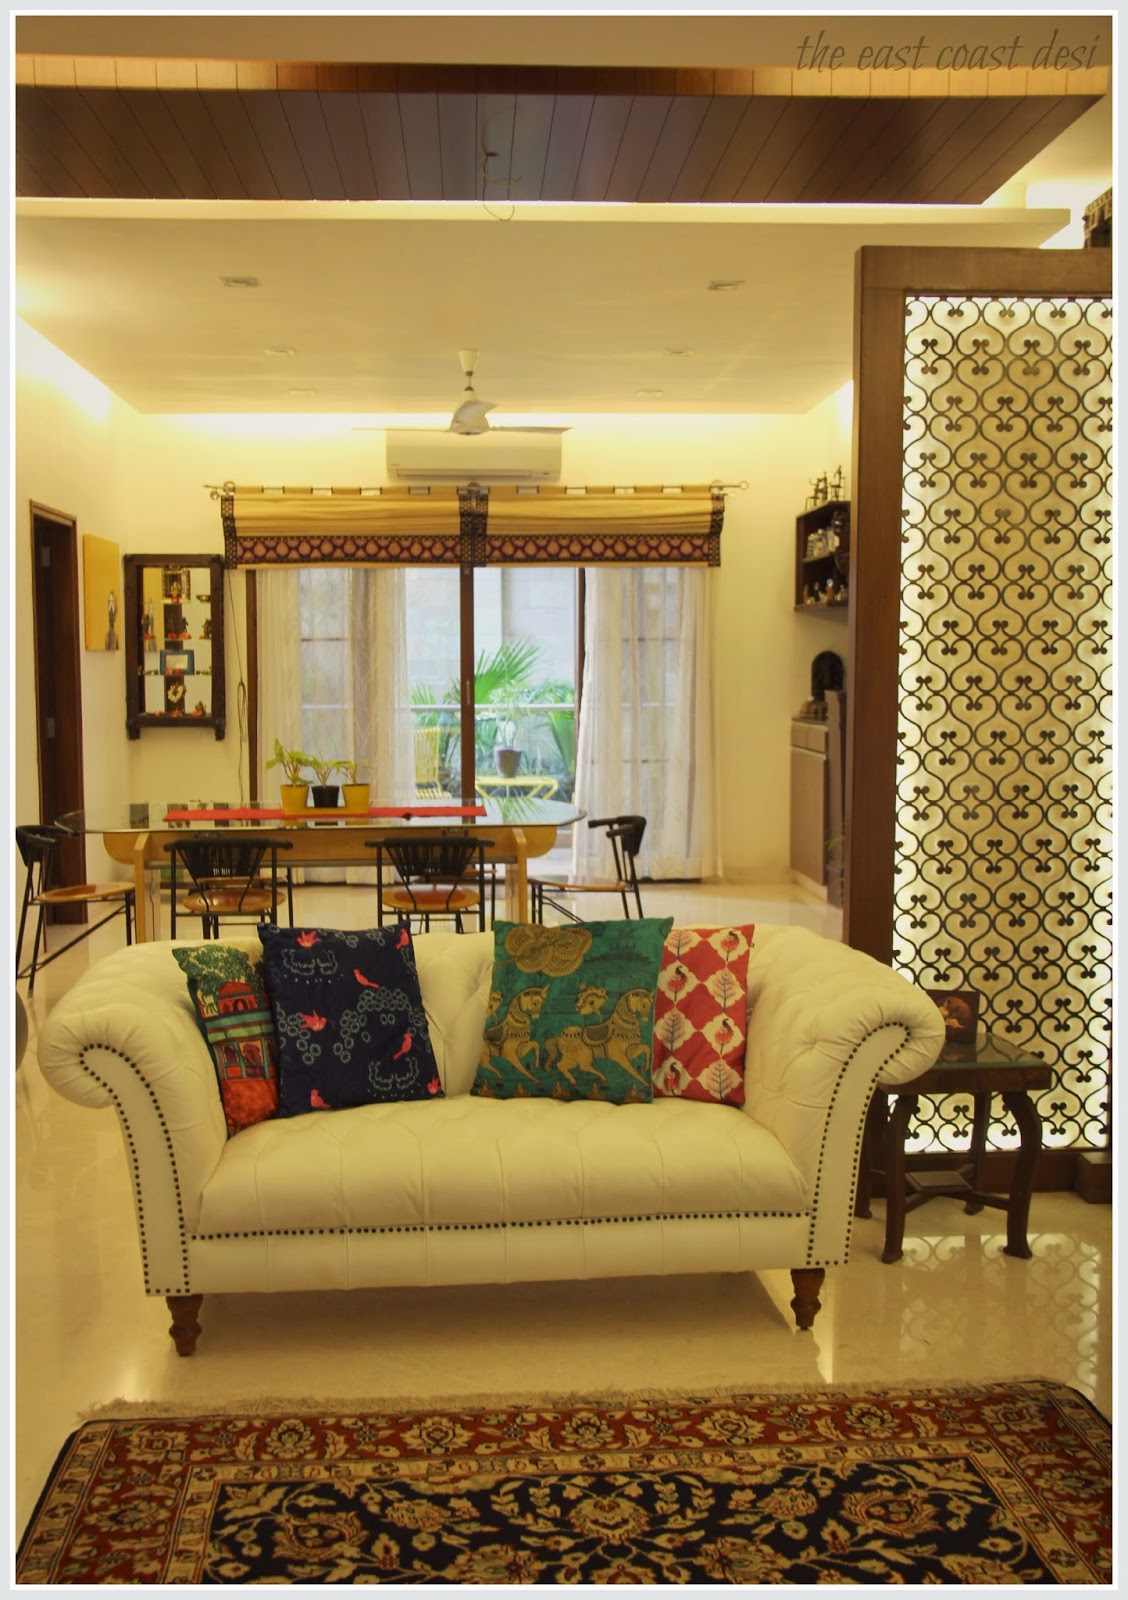 The east coast desi masterful mixing home tour for Home interior designs in india photos